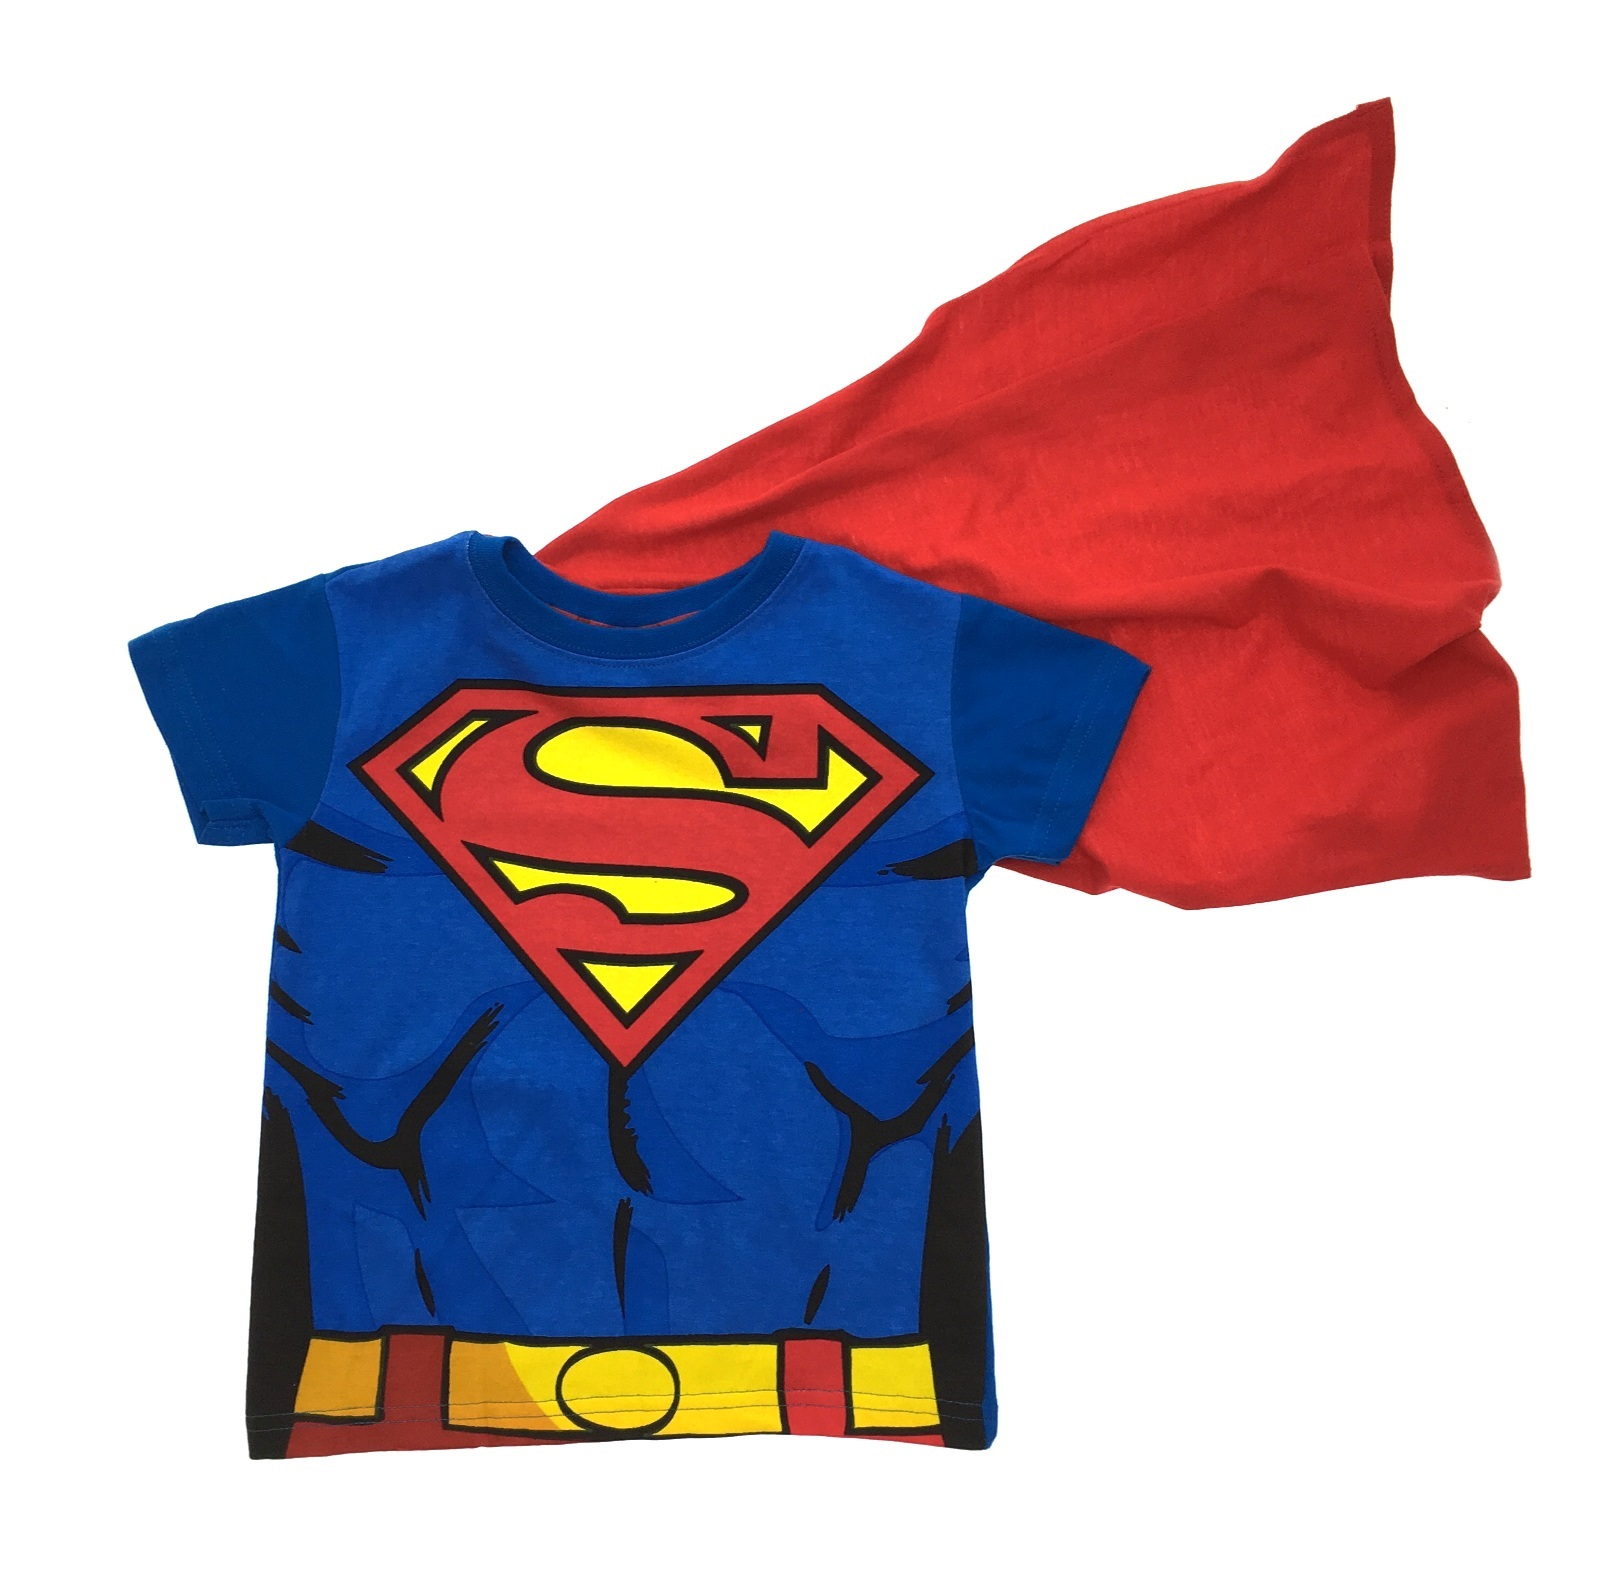 Now your little one can dress up as the Man of Steel wearing a Superman T-Shirt with Cape for boys! This blue cotton T-shirt features the Superman logo, muscles designs, and an attached red polyester cape. Pair this T-shirt with a pair of blue leggings to create a DIY Superman costume for your child.